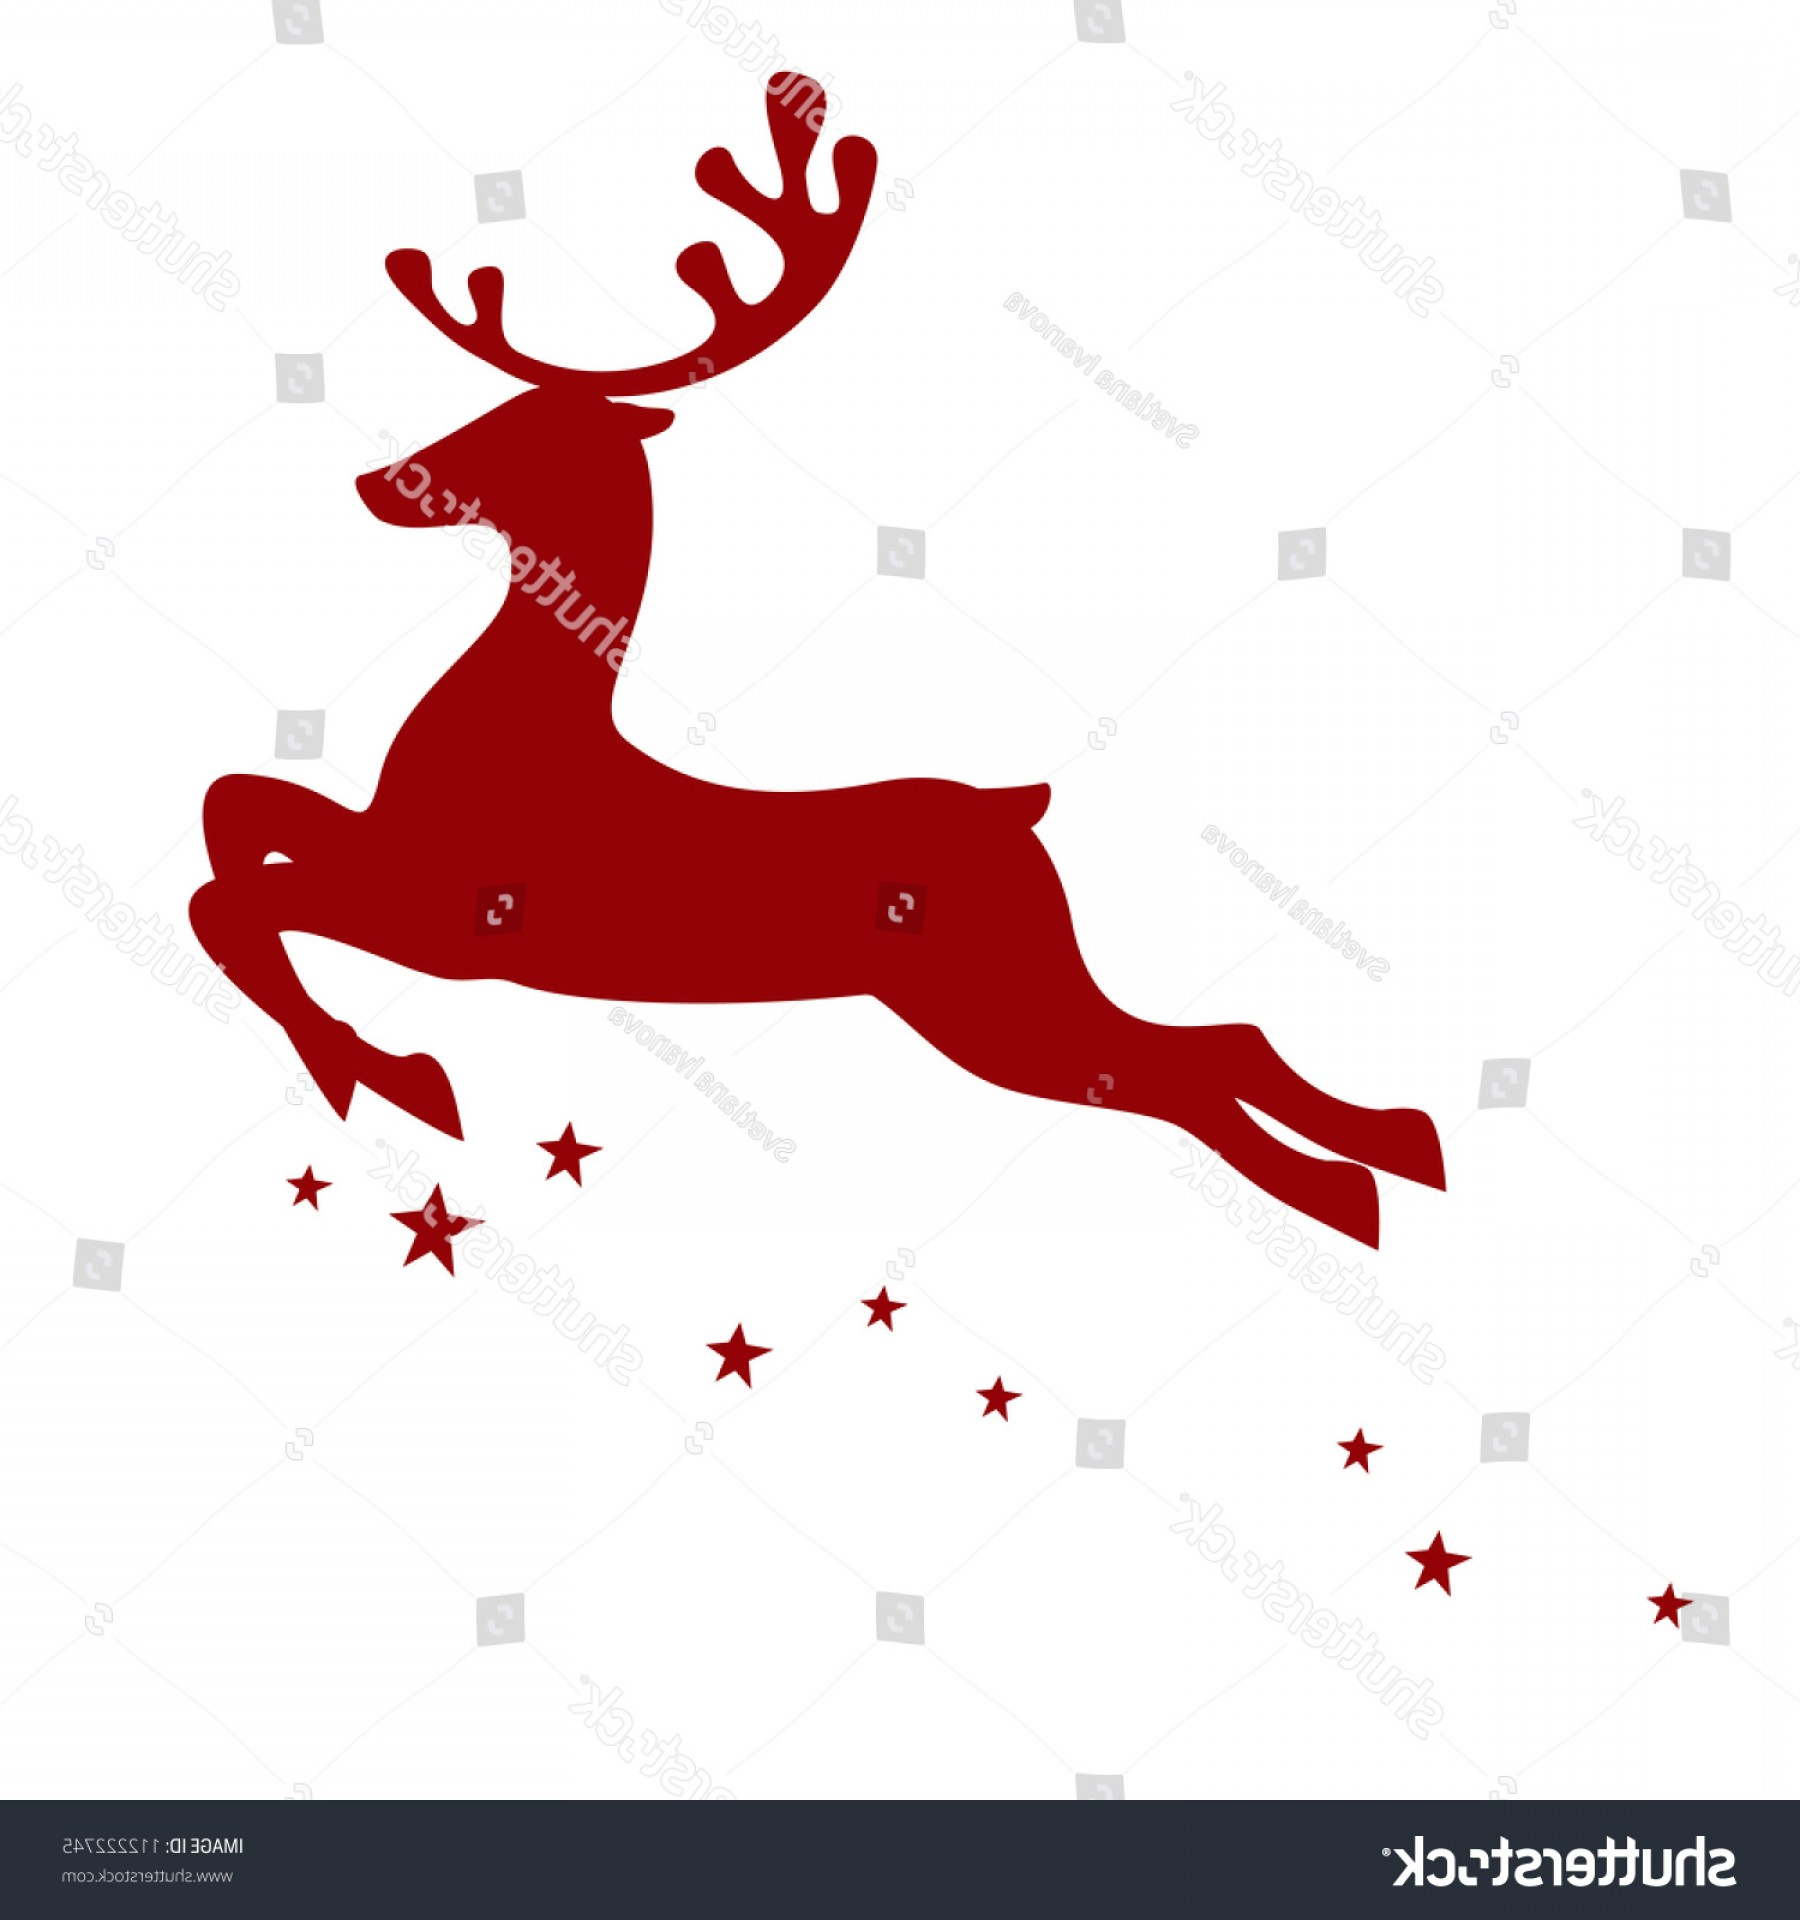 Kissing Reindeer Silhouette Vector: Vector Illustration Red Reindeer Isolated On